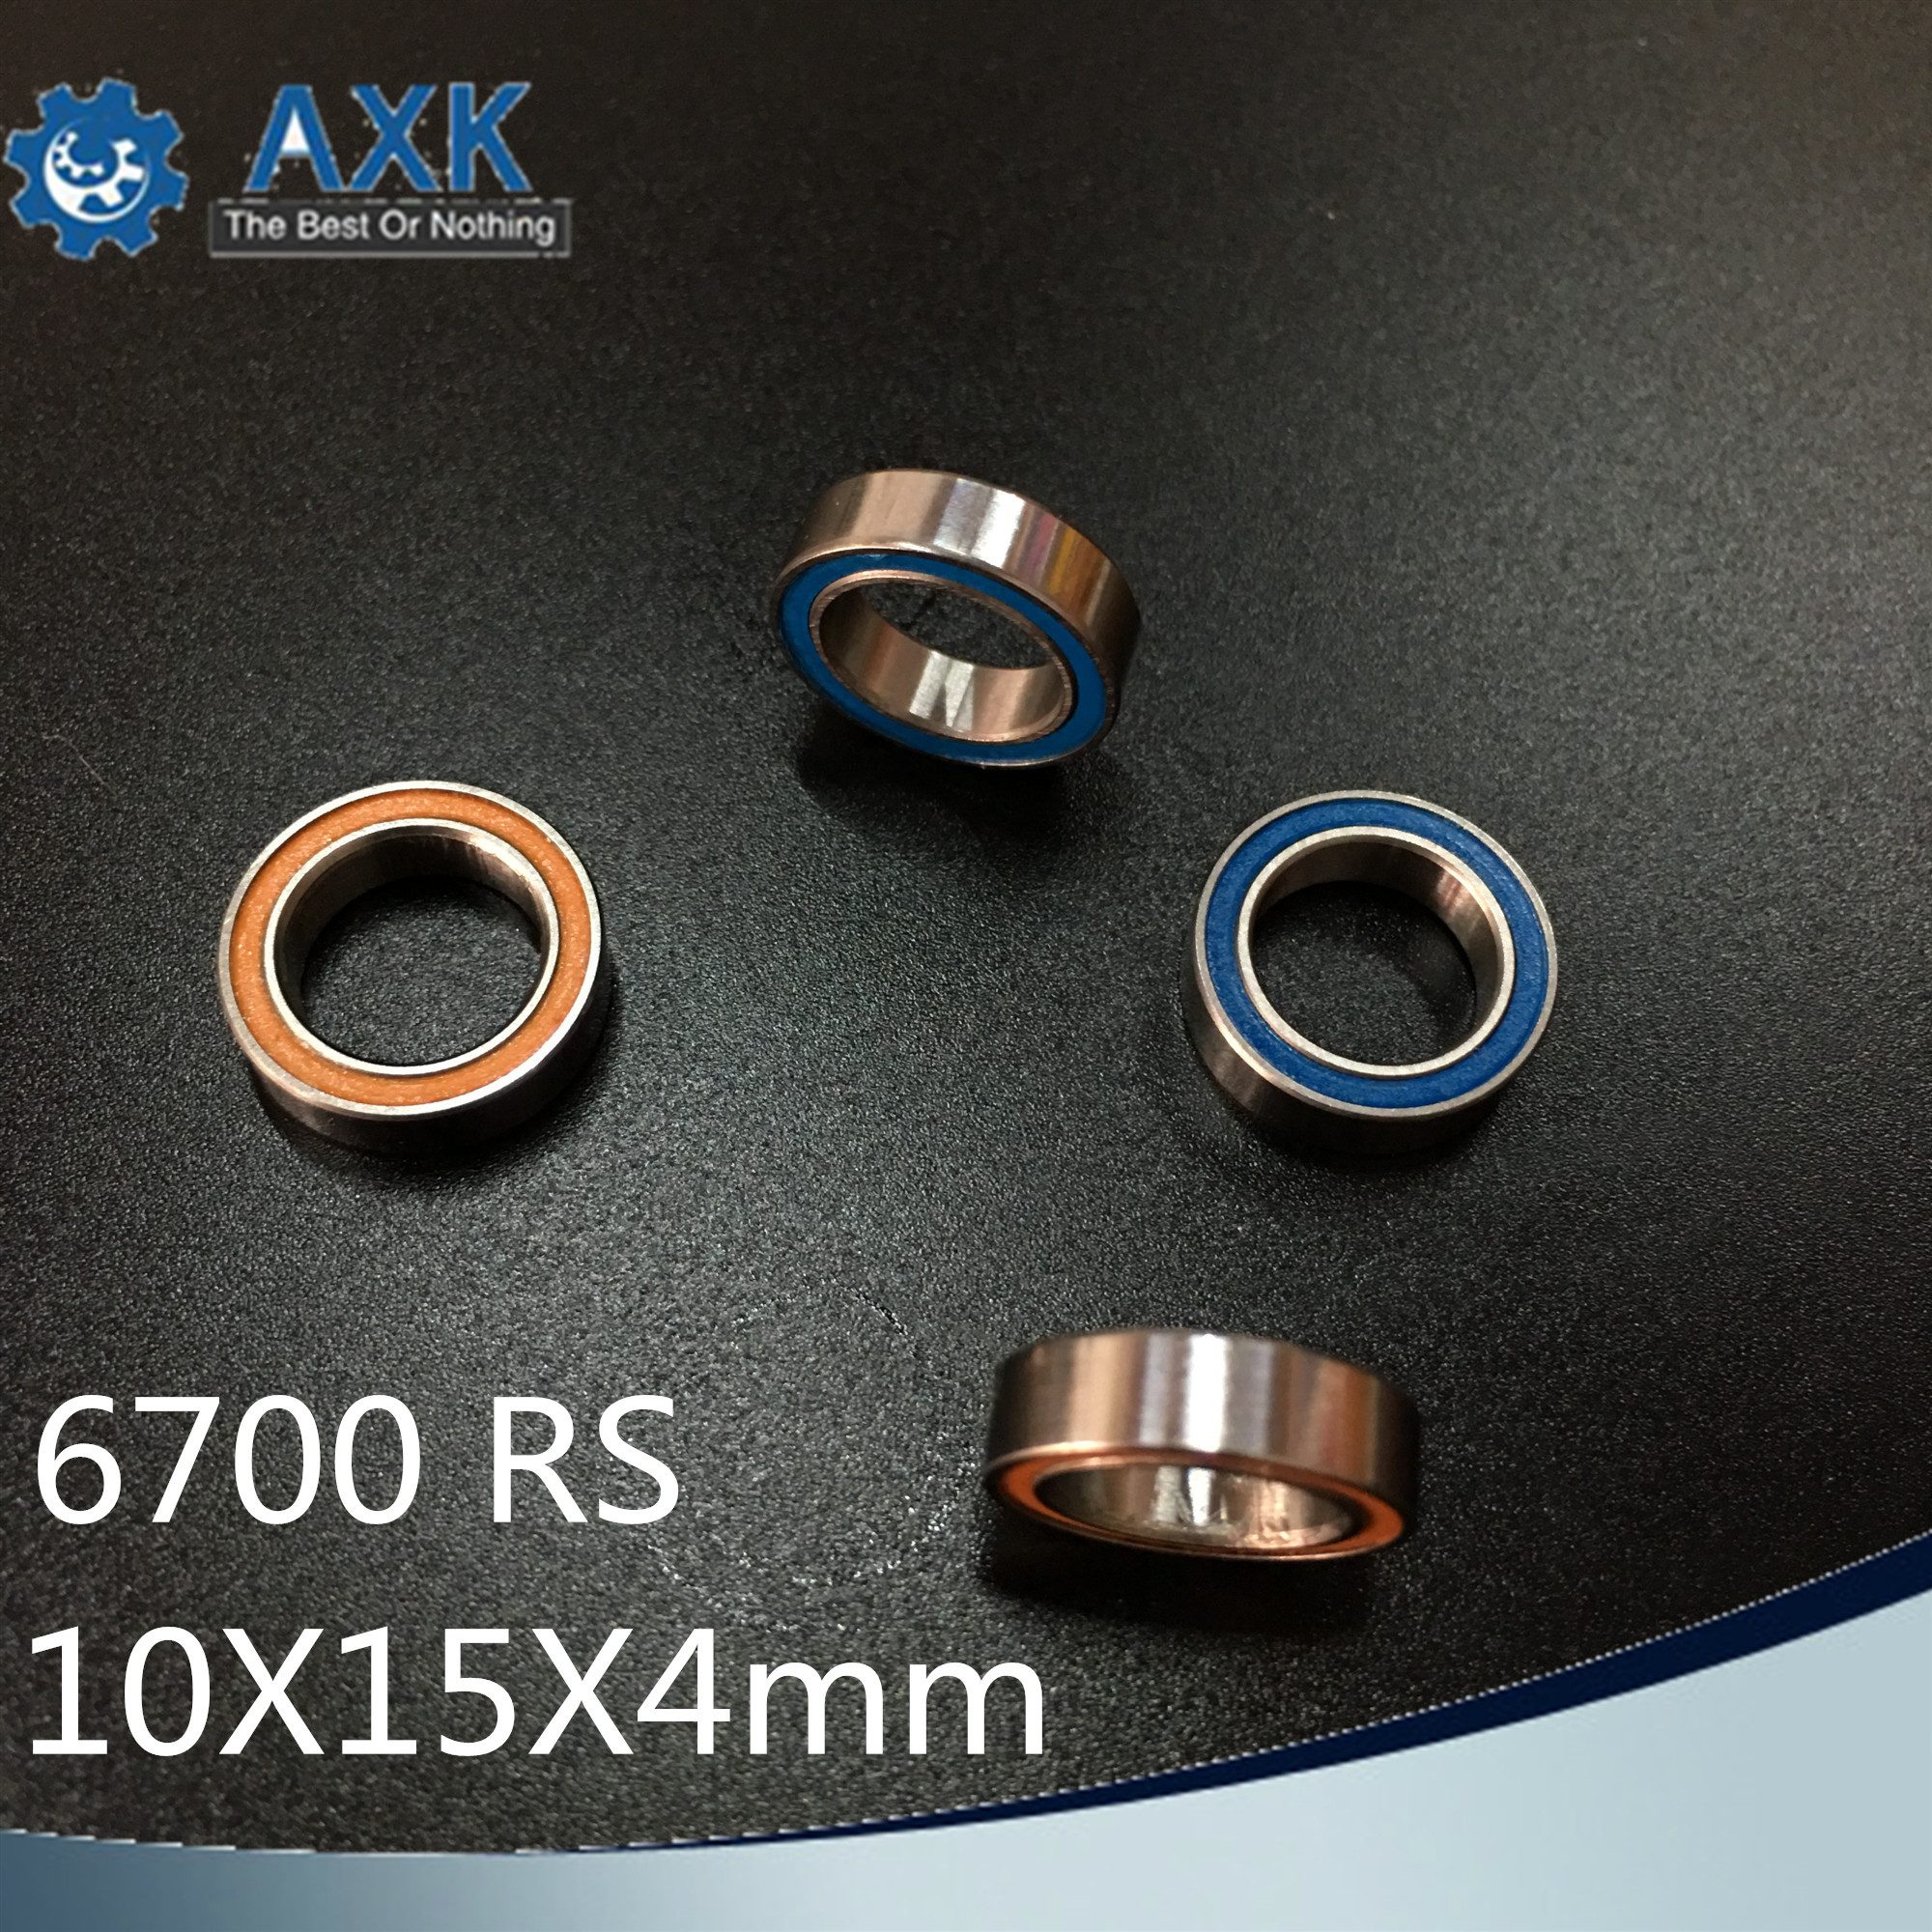 6700RS Bearing 10PCS 10x15x4 mm ABEC-3 Hobby Electric RC Car Truck 6700 RS 2RS Ball Bearings 6700-2RS Blue/Orange Sealed6700RS Bearing 10PCS 10x15x4 mm ABEC-3 Hobby Electric RC Car Truck 6700 RS 2RS Ball Bearings 6700-2RS Blue/Orange Sealed